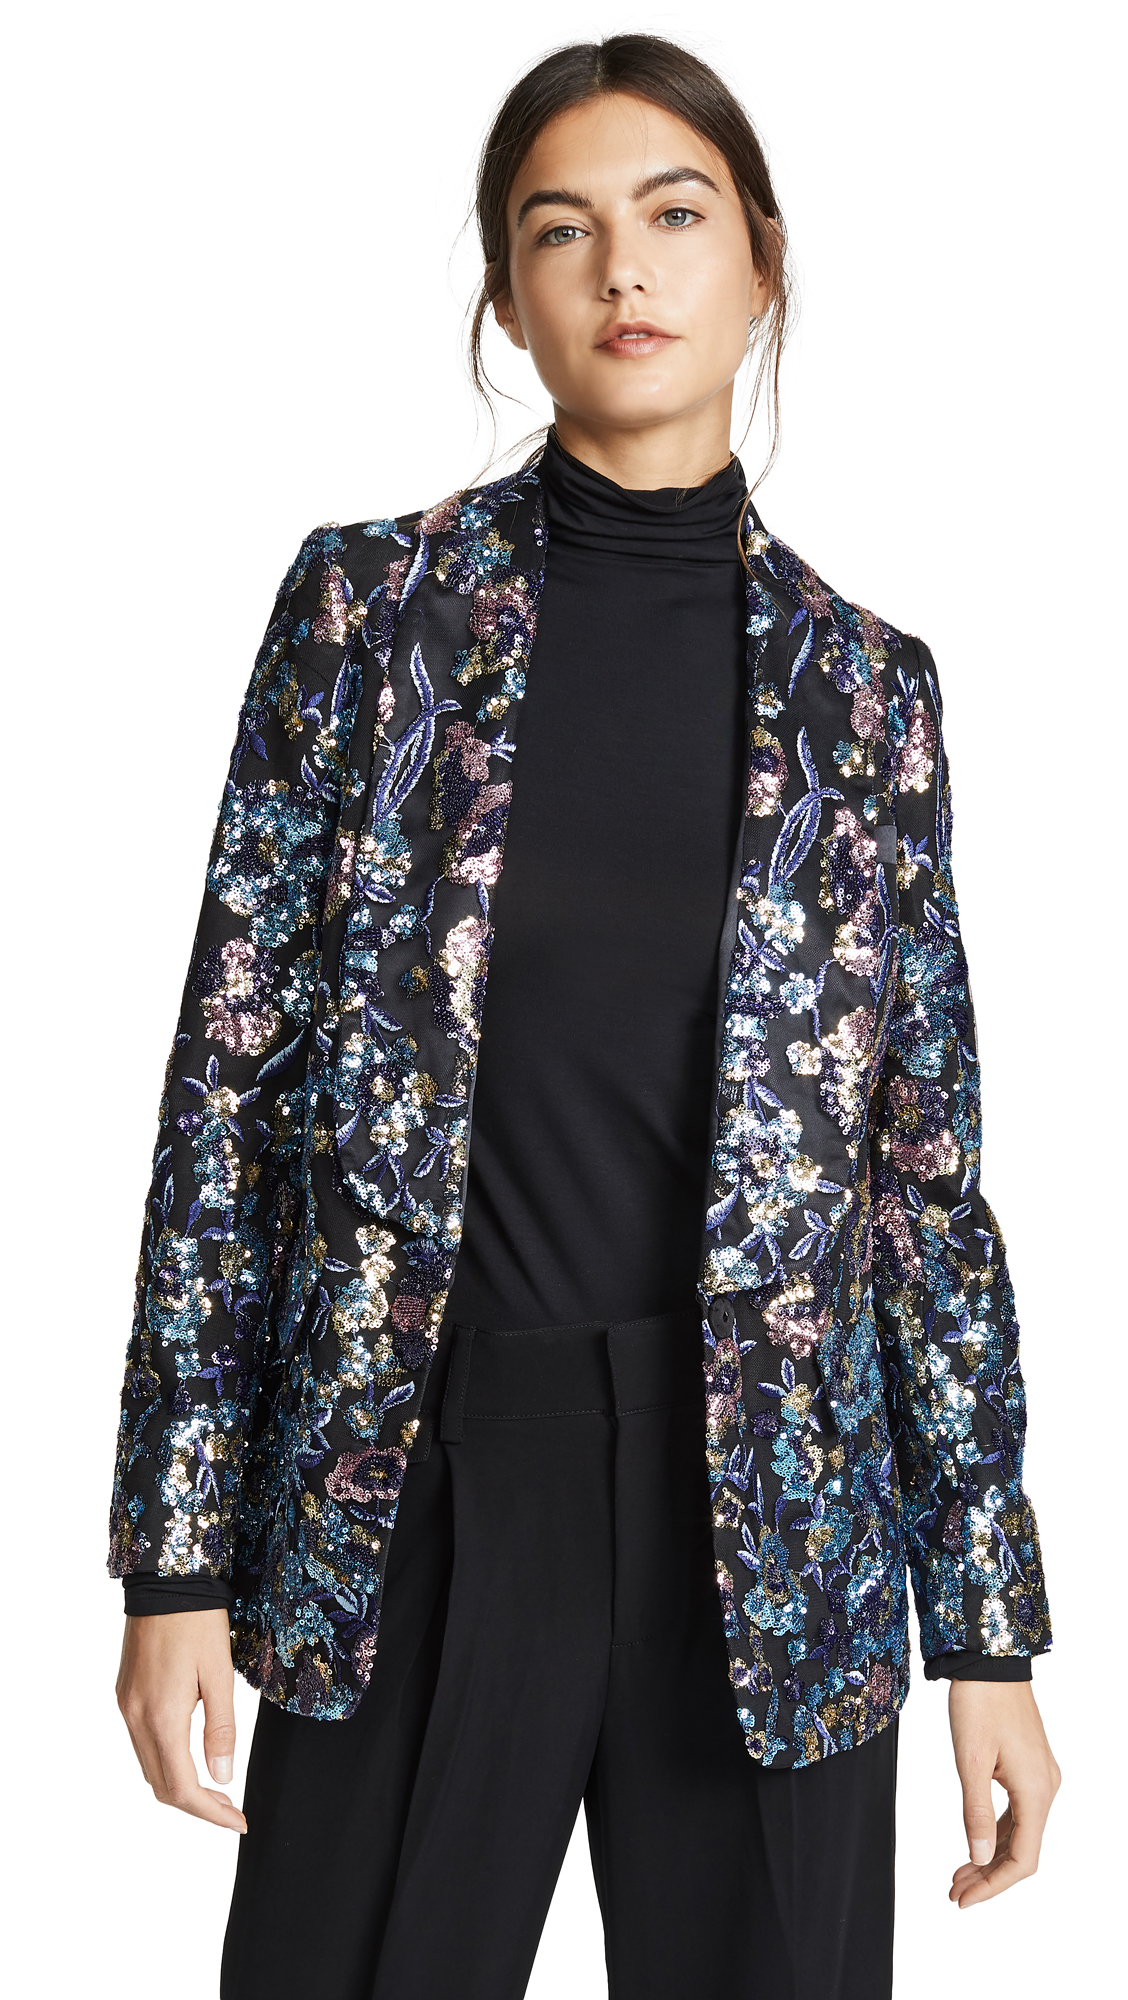 Self Portrait Sequin Embellished Jacket - Multi